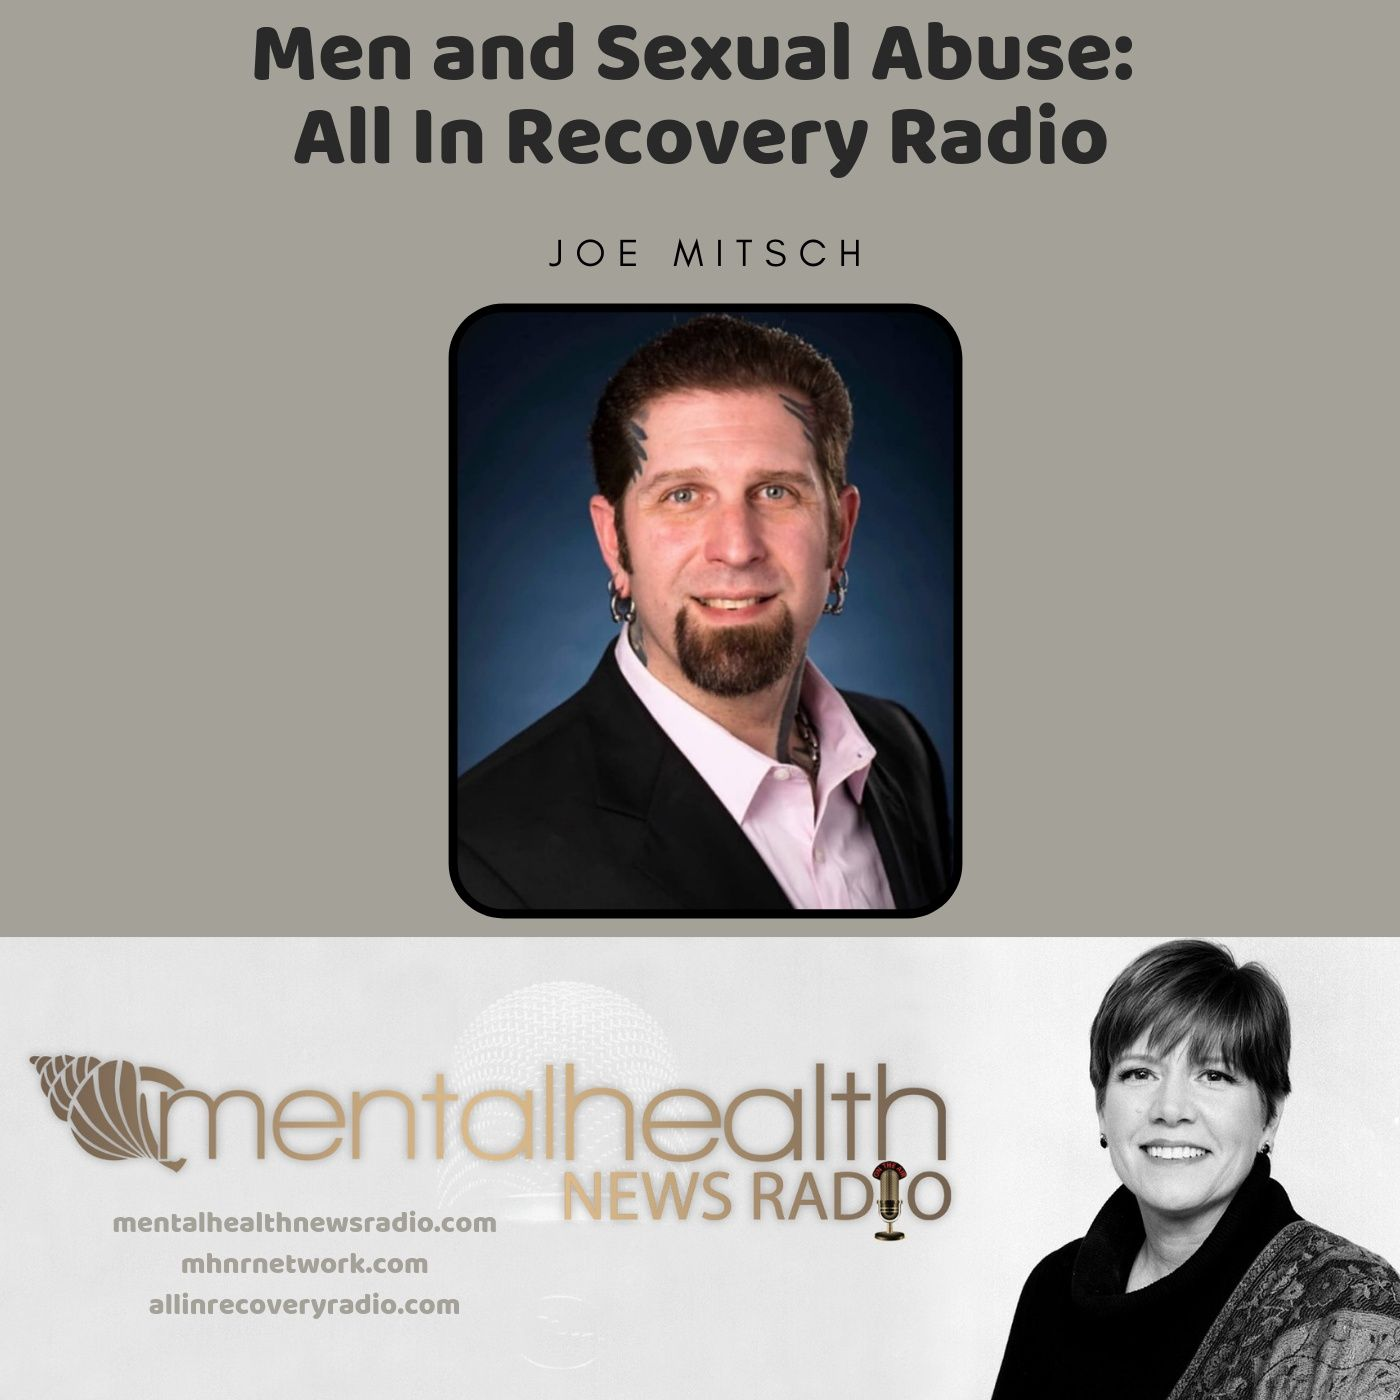 Mental Health News Radio - Men and Sexual Abuse: All In Recovery Radio